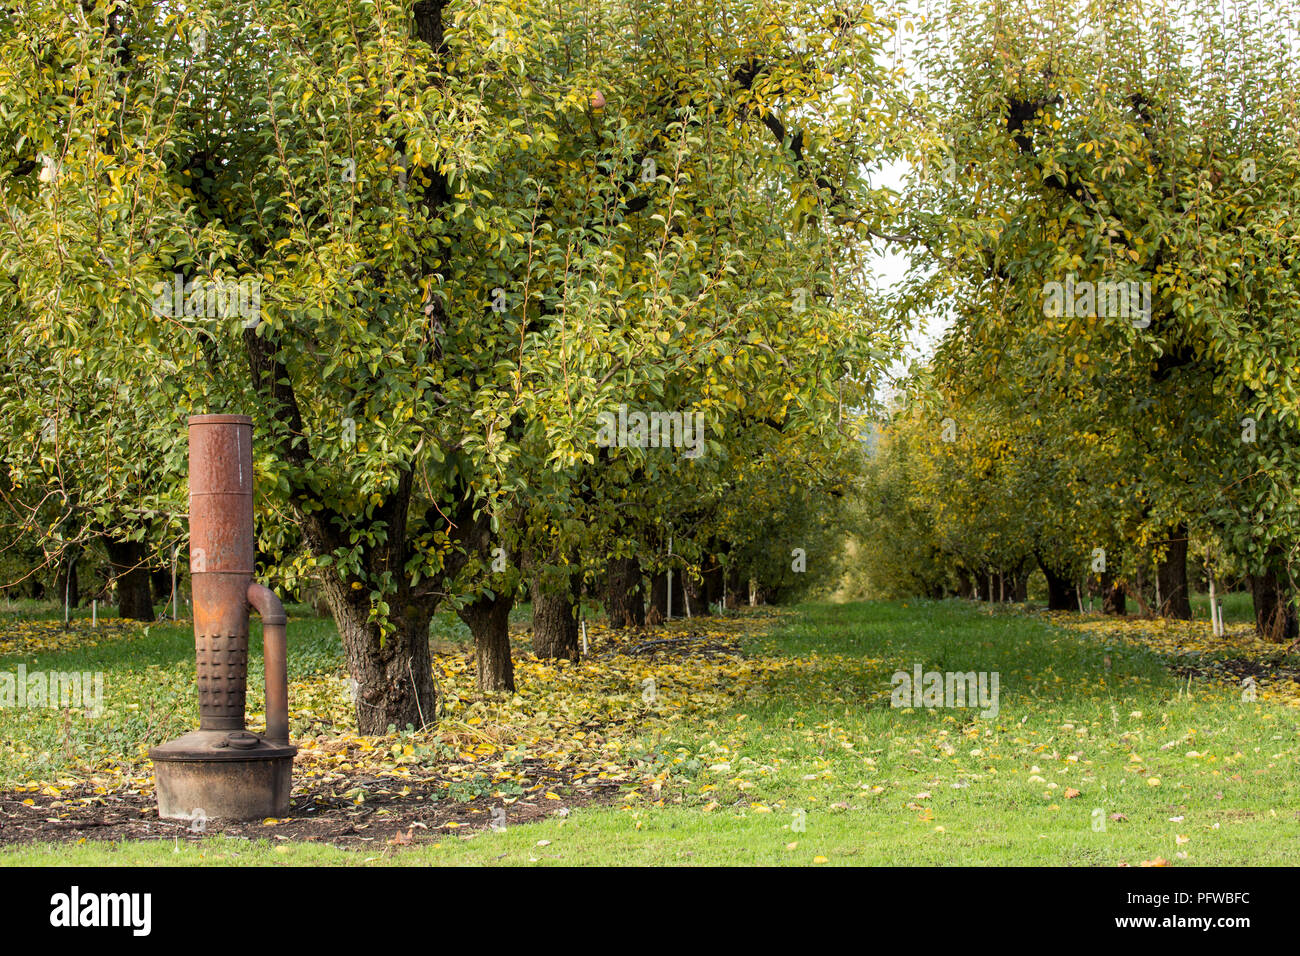 Hood River, Oregon, USA.  A smudge pot (also known as a choofa or orchard heater), an oil-burning device used to prevent frost on fruit trees - Stock Image